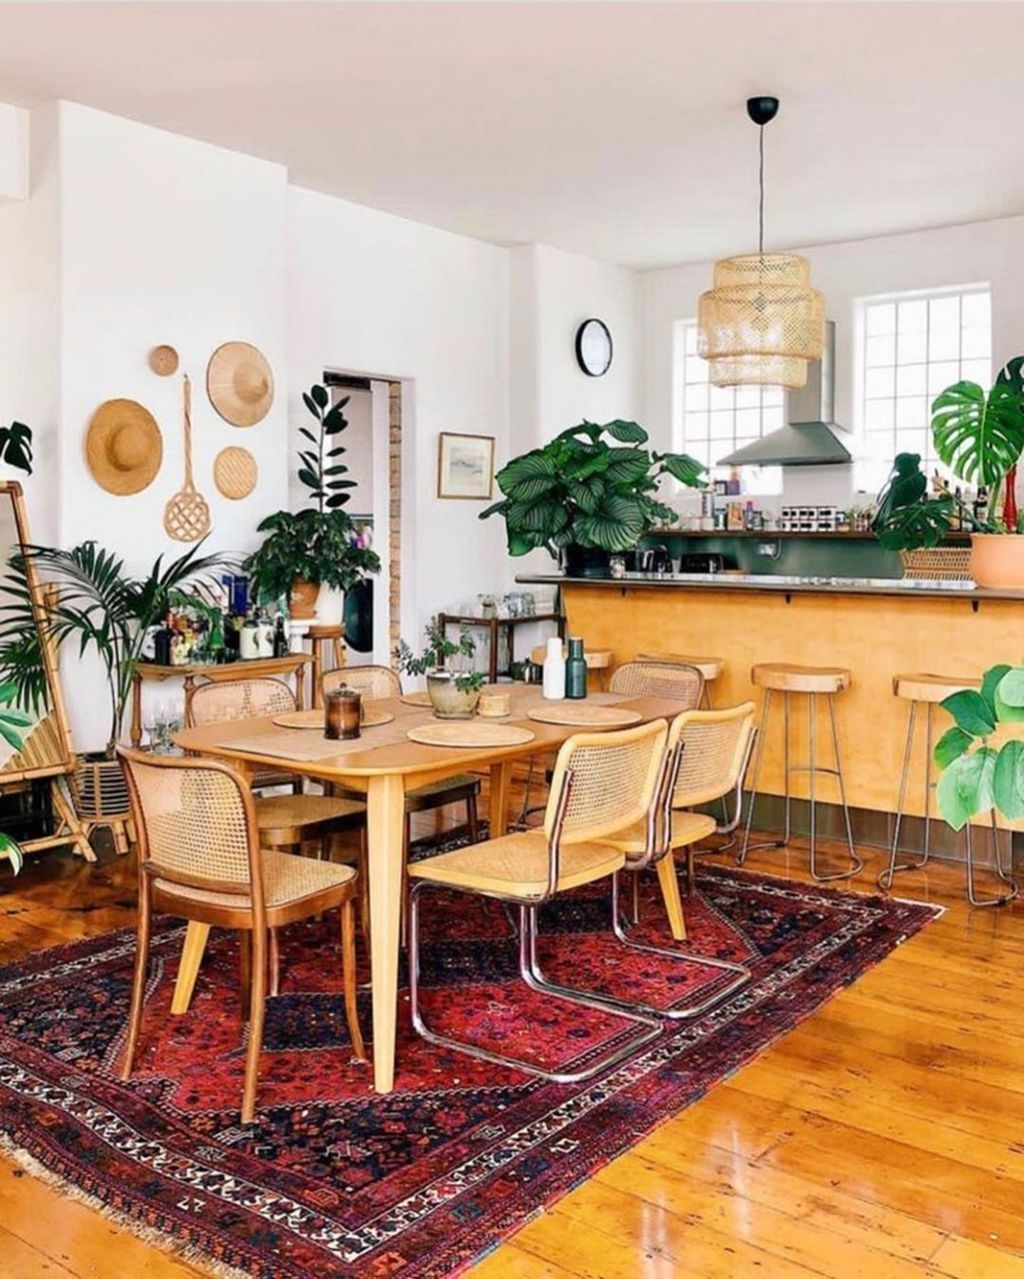 20+ Inspiring Bohemian Dining Rooms Ideas We Love in 2020 ...